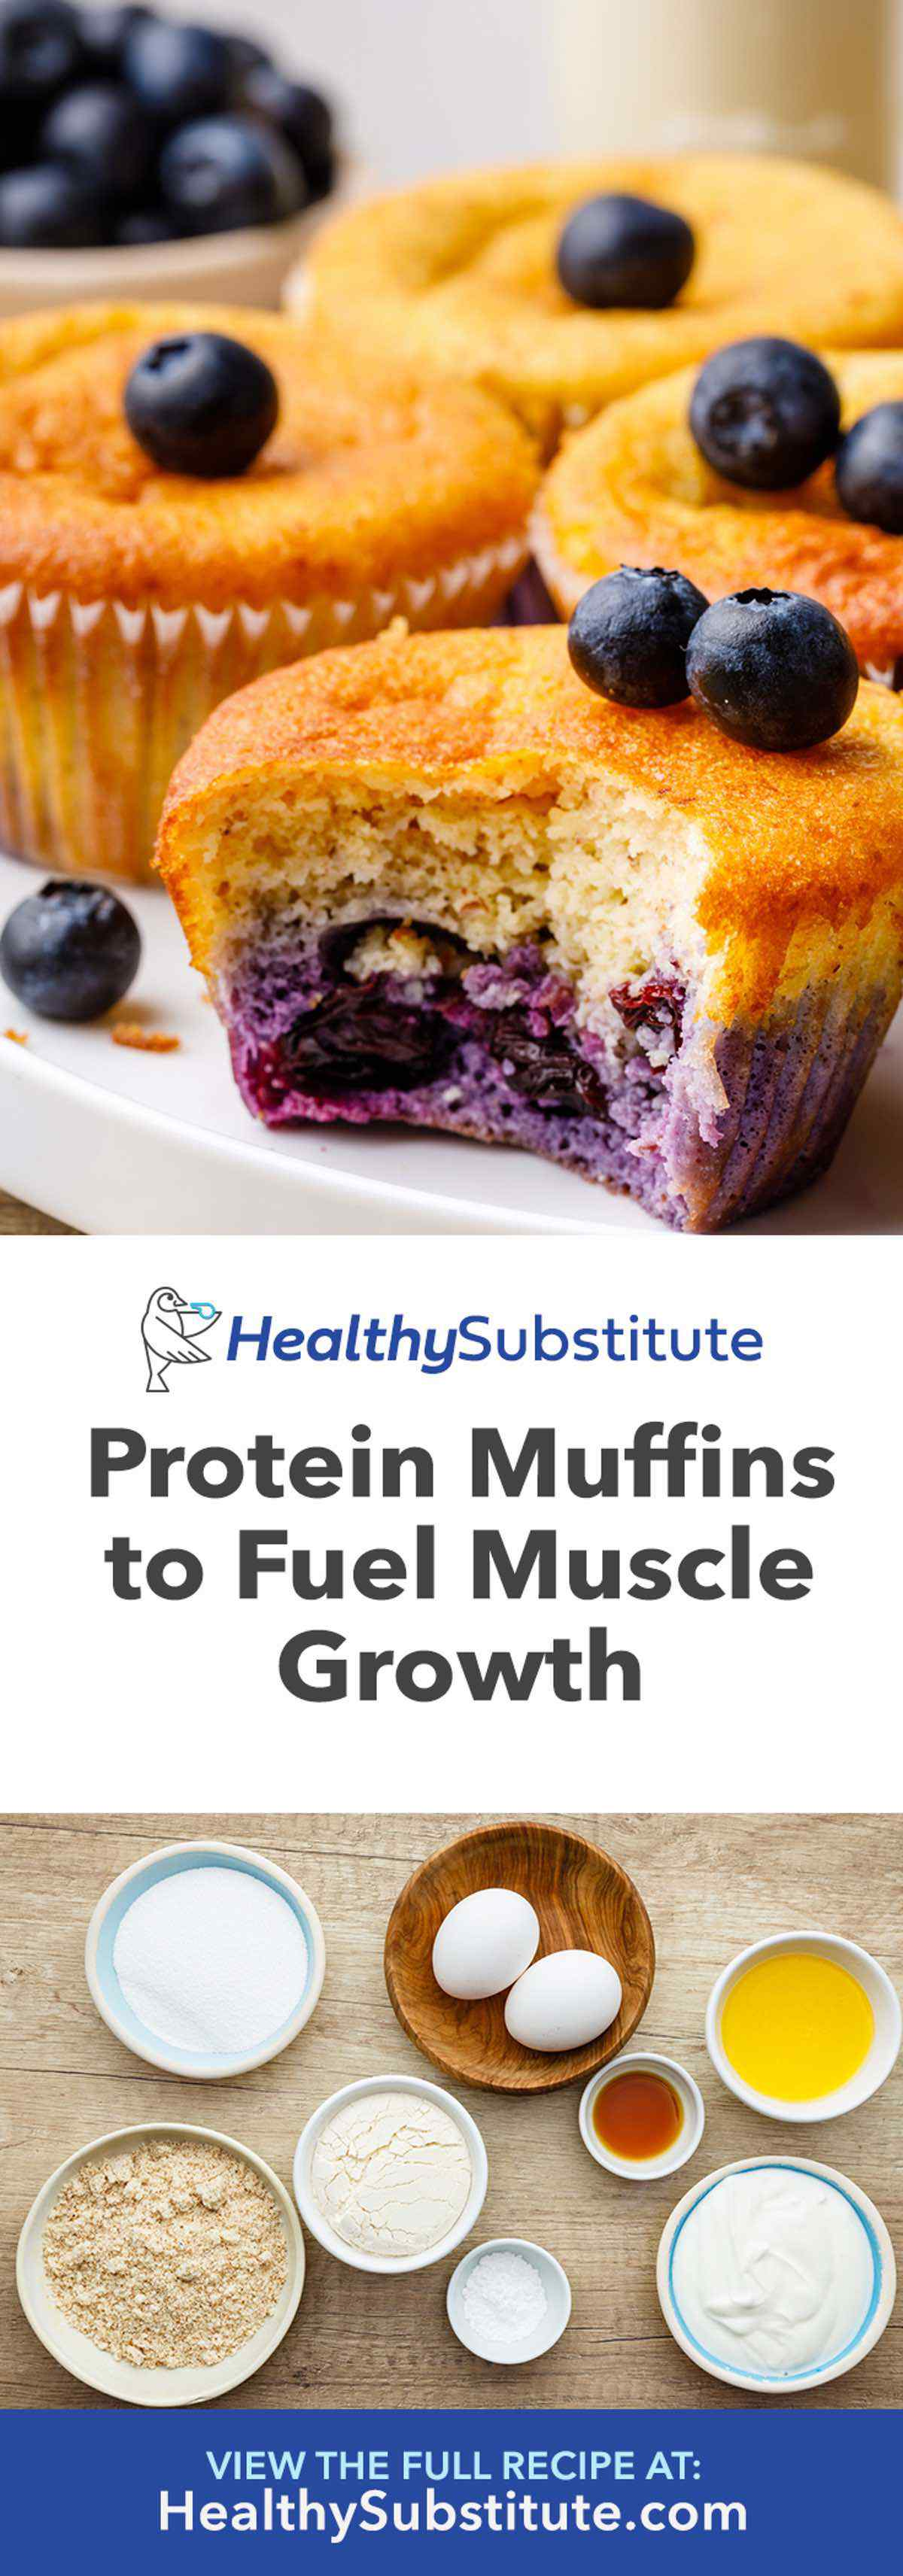 Low Carb Protein Muffins